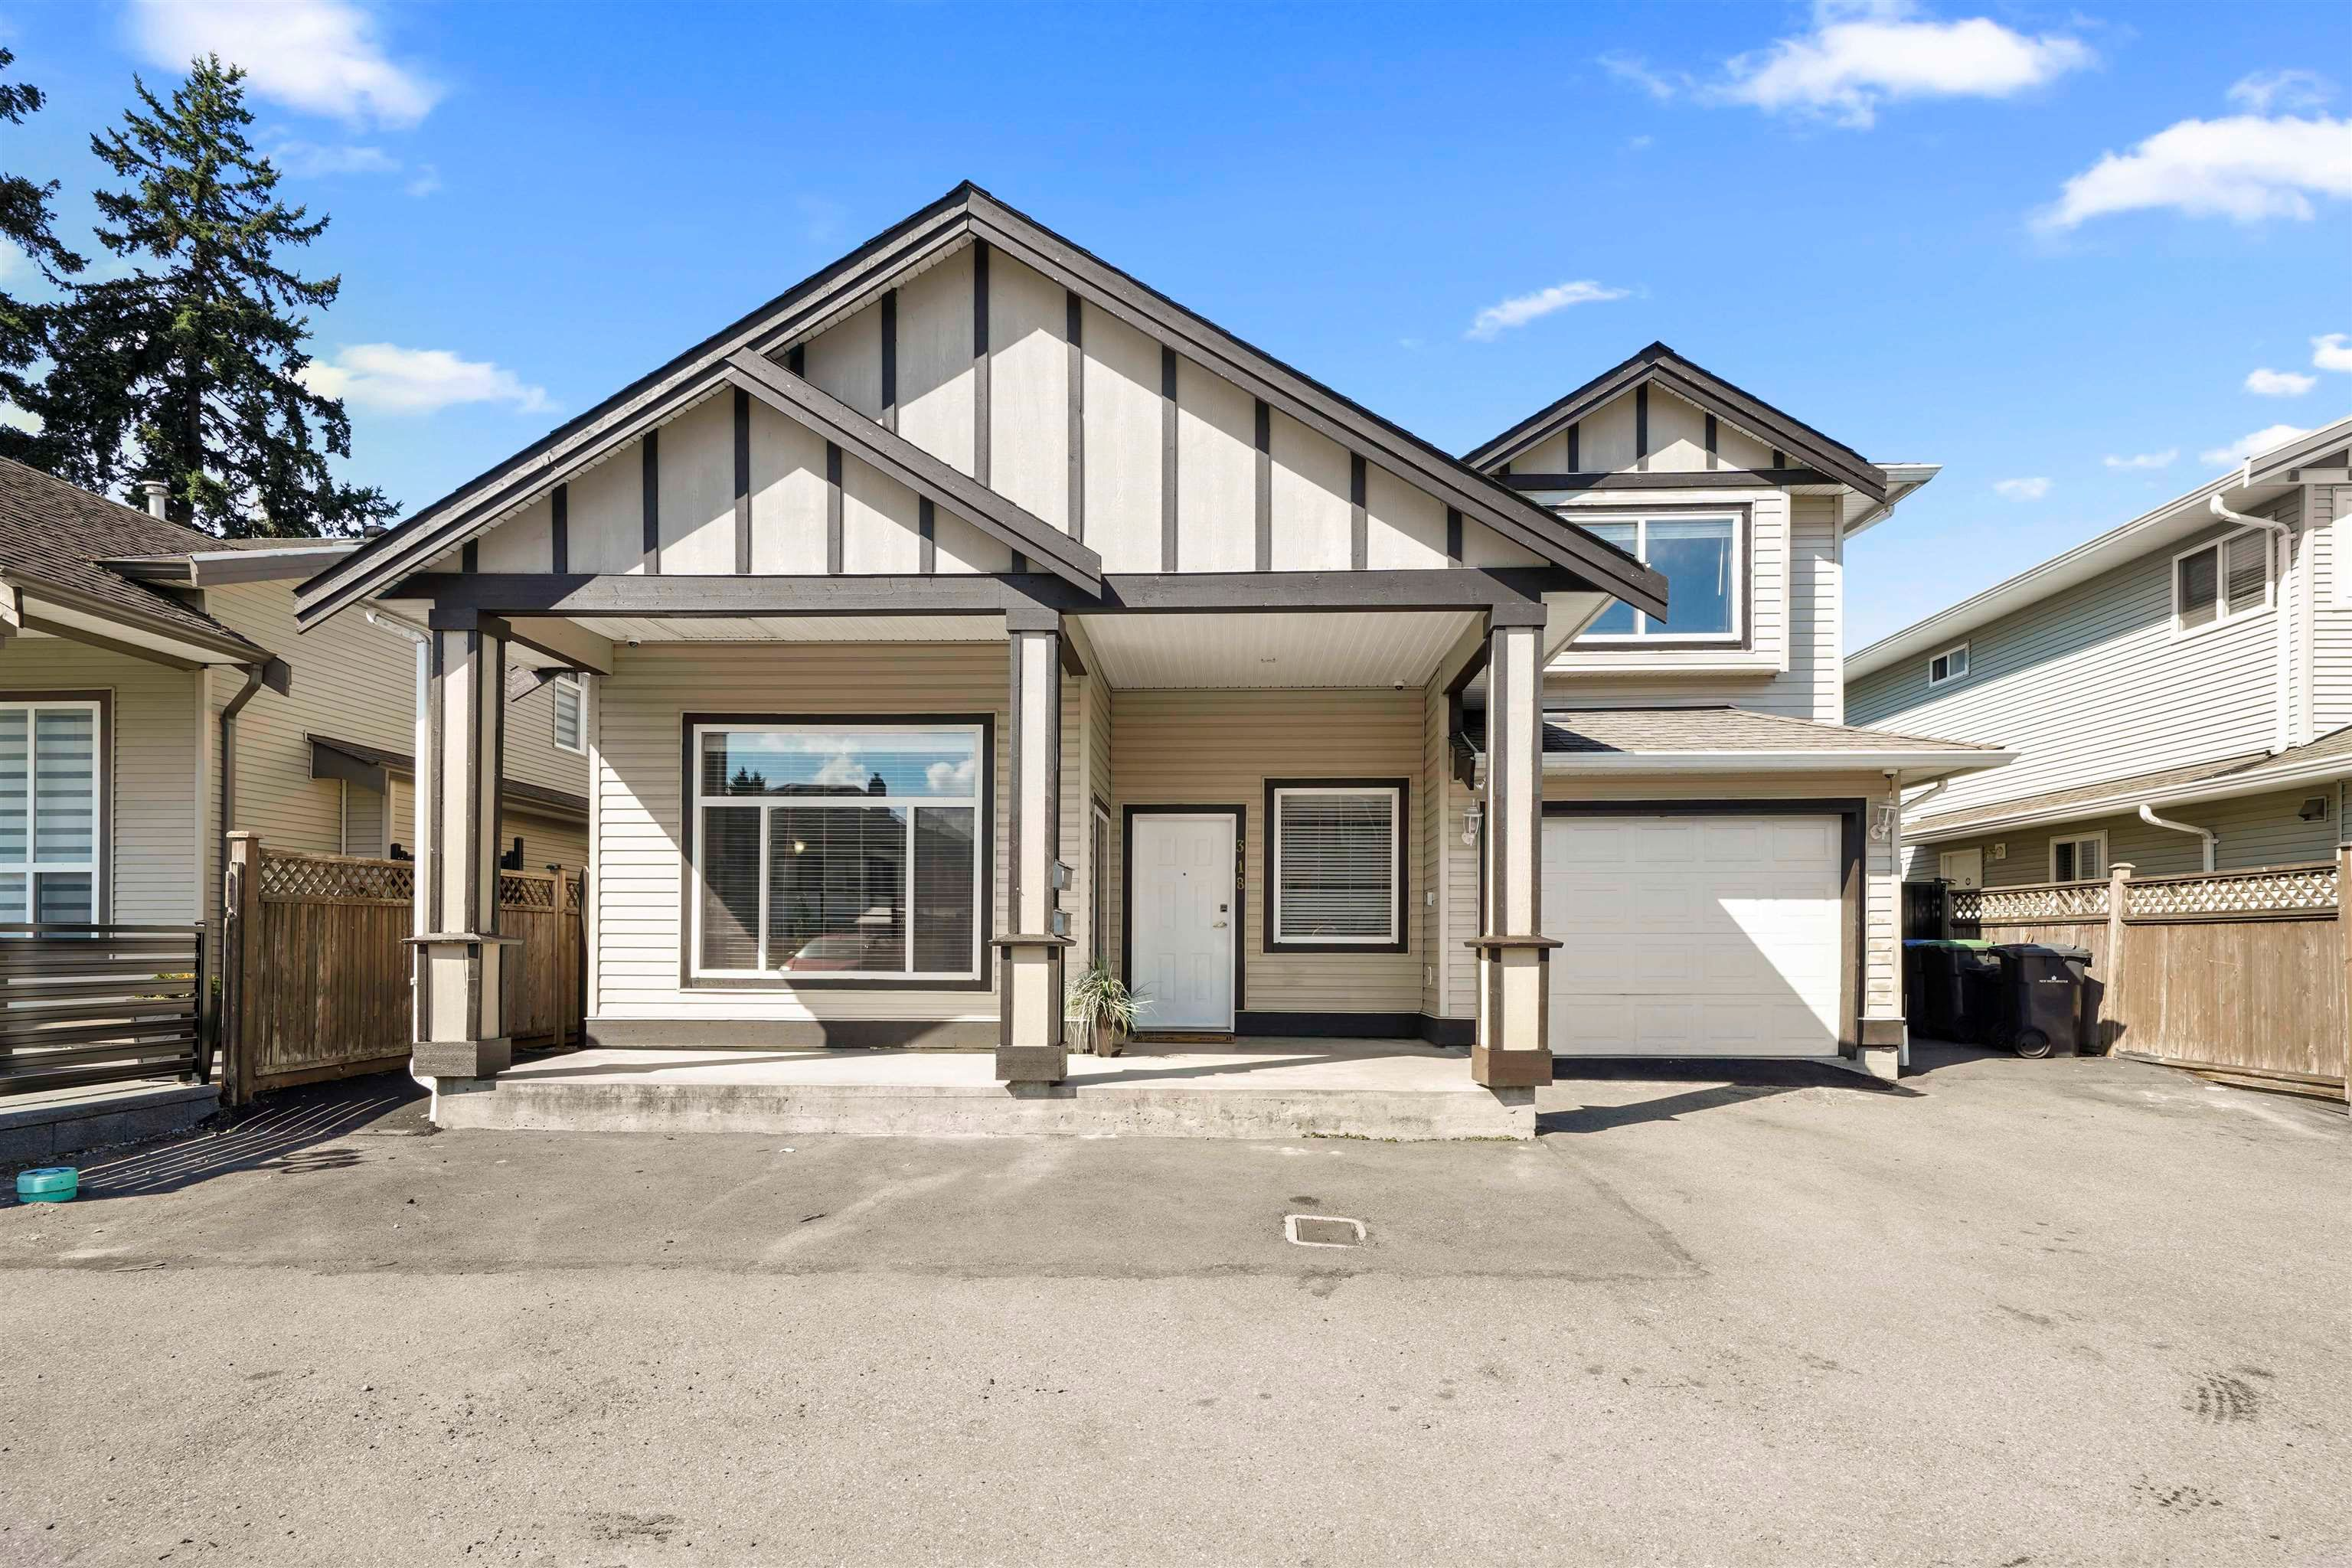 Main Photo: 318 HUME Street in New Westminster: Queensborough House for sale : MLS®# R2618681